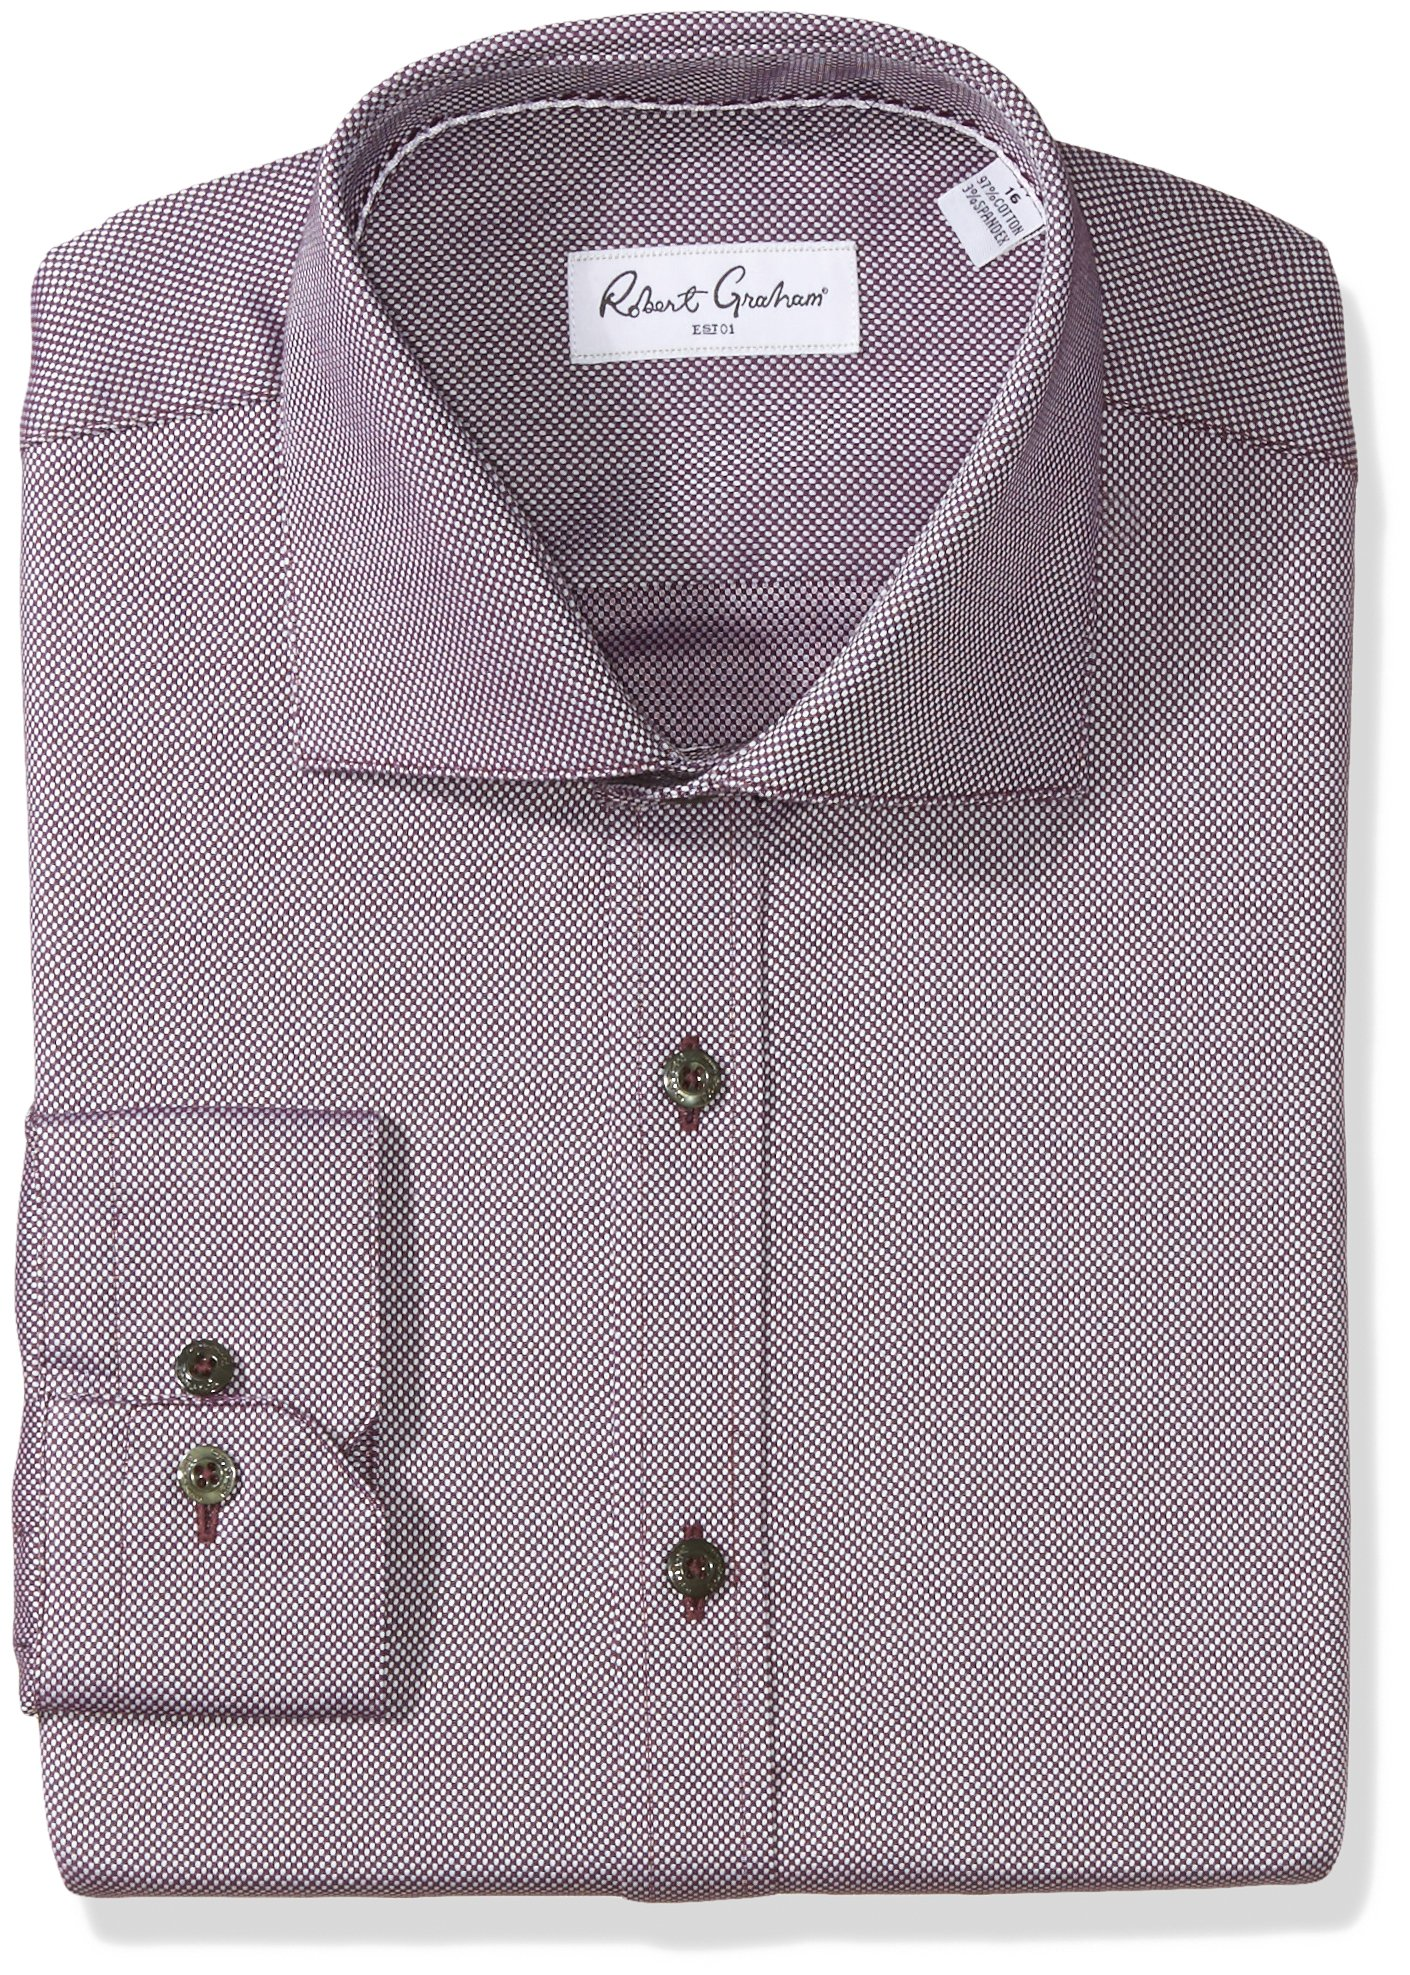 Robert Graham Men's Felix Regular Fit Textured Dress Shirt, Wine, 17'' Neck 36'' Sleeve